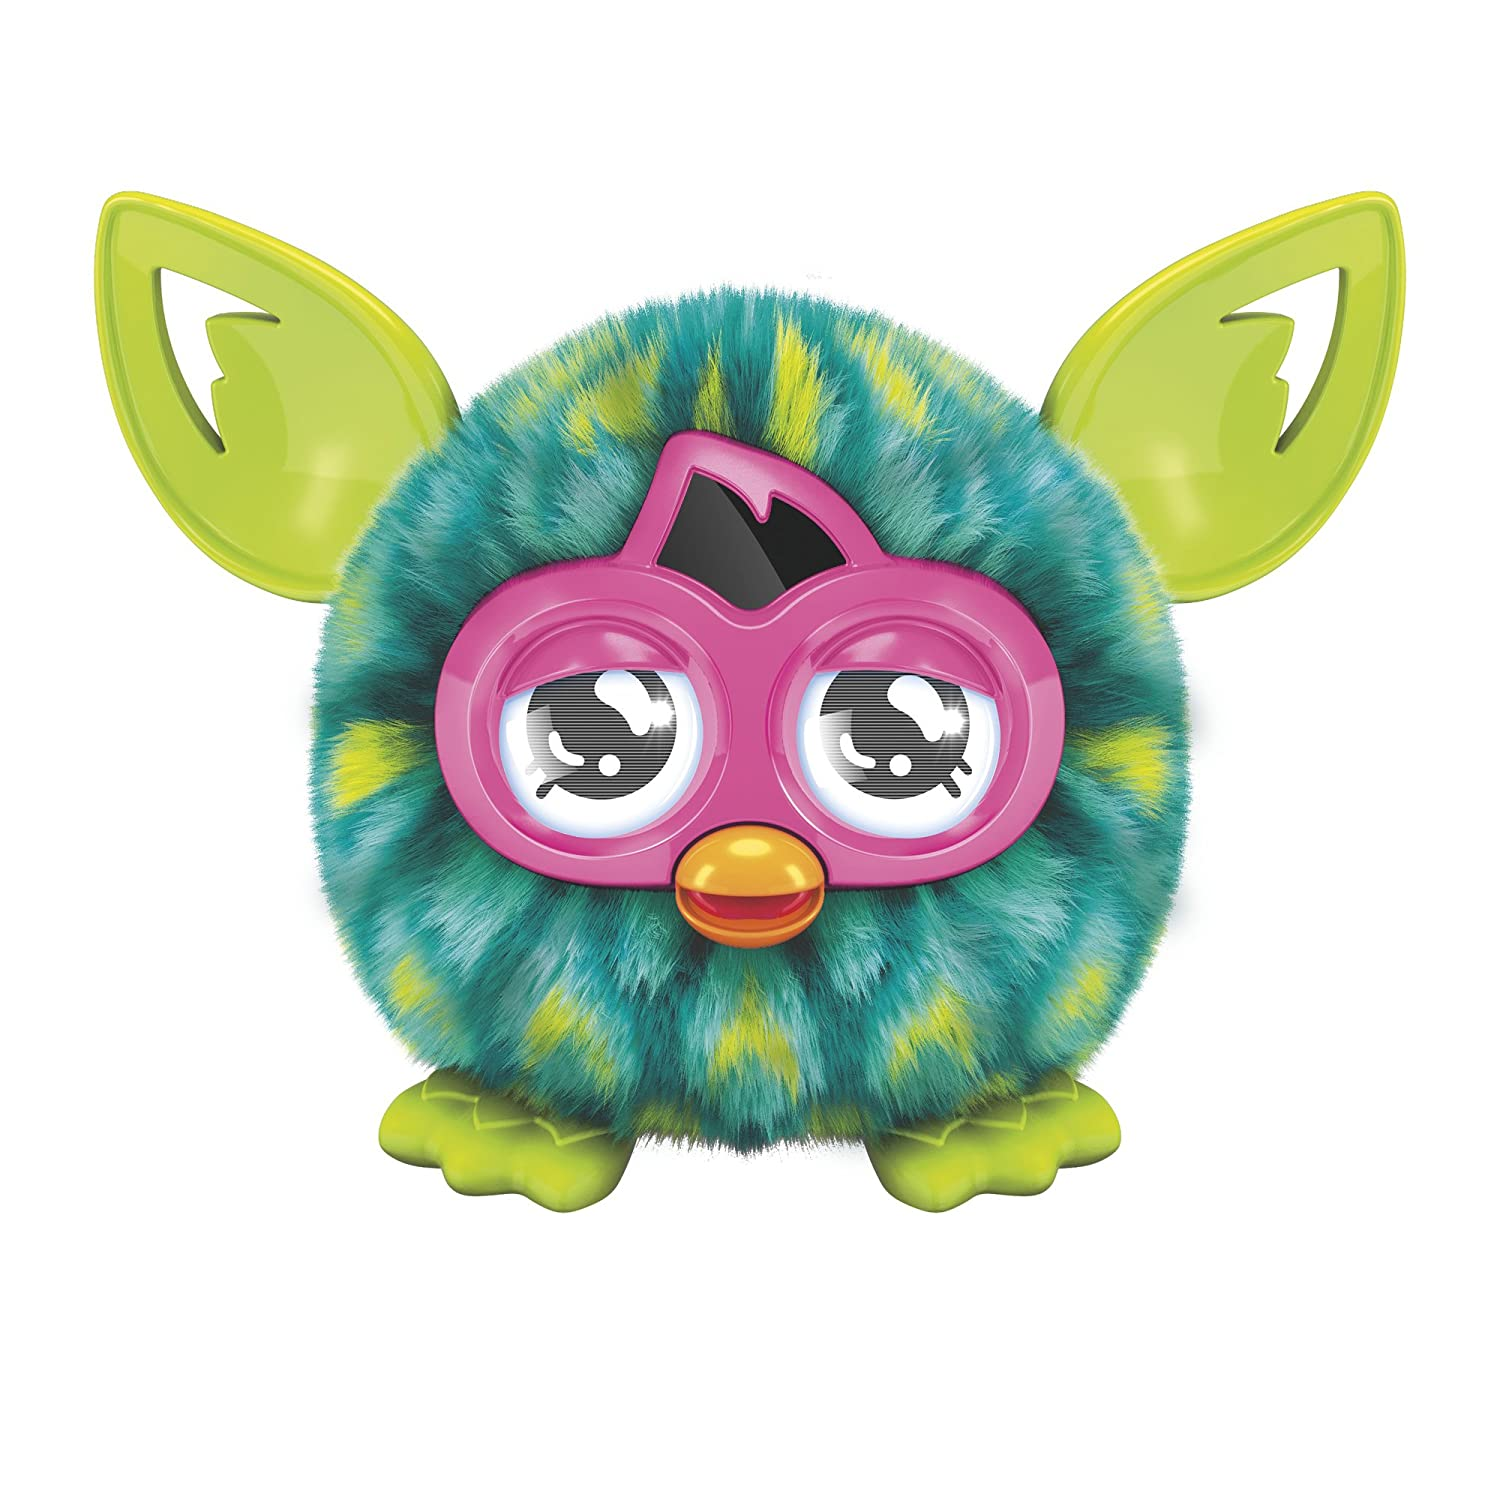 Furby Furbling Creature Peacock Feather Plush [US Import] günstig kaufen